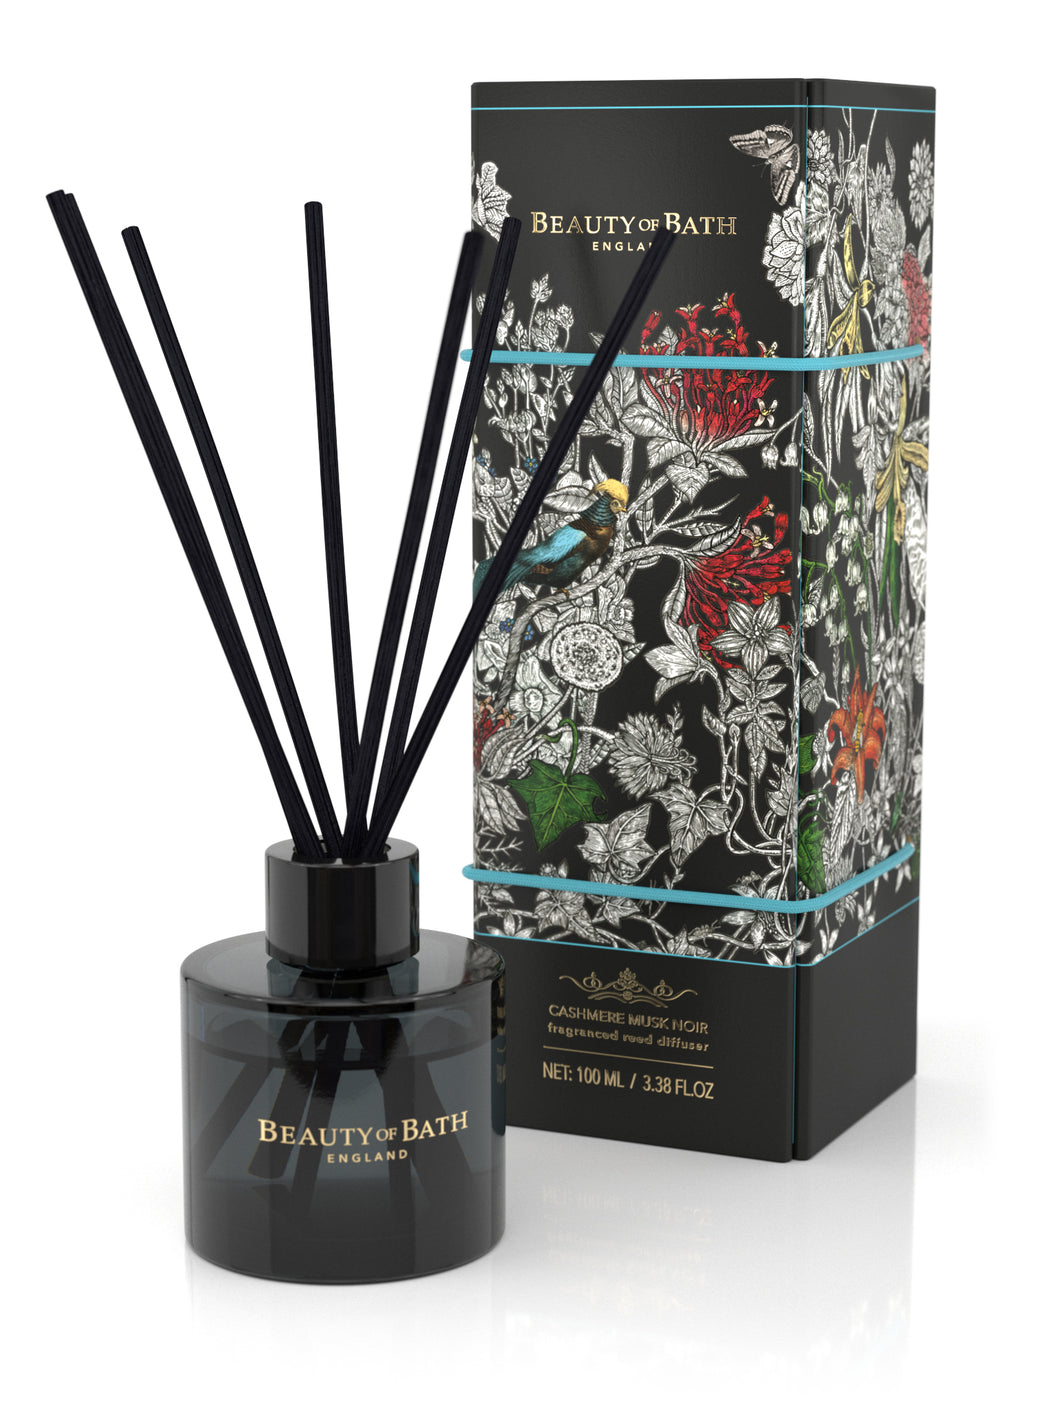 BEAUTY OF BATH REED DIFFUSER 100ml # CASHMERE MUSK NOIR